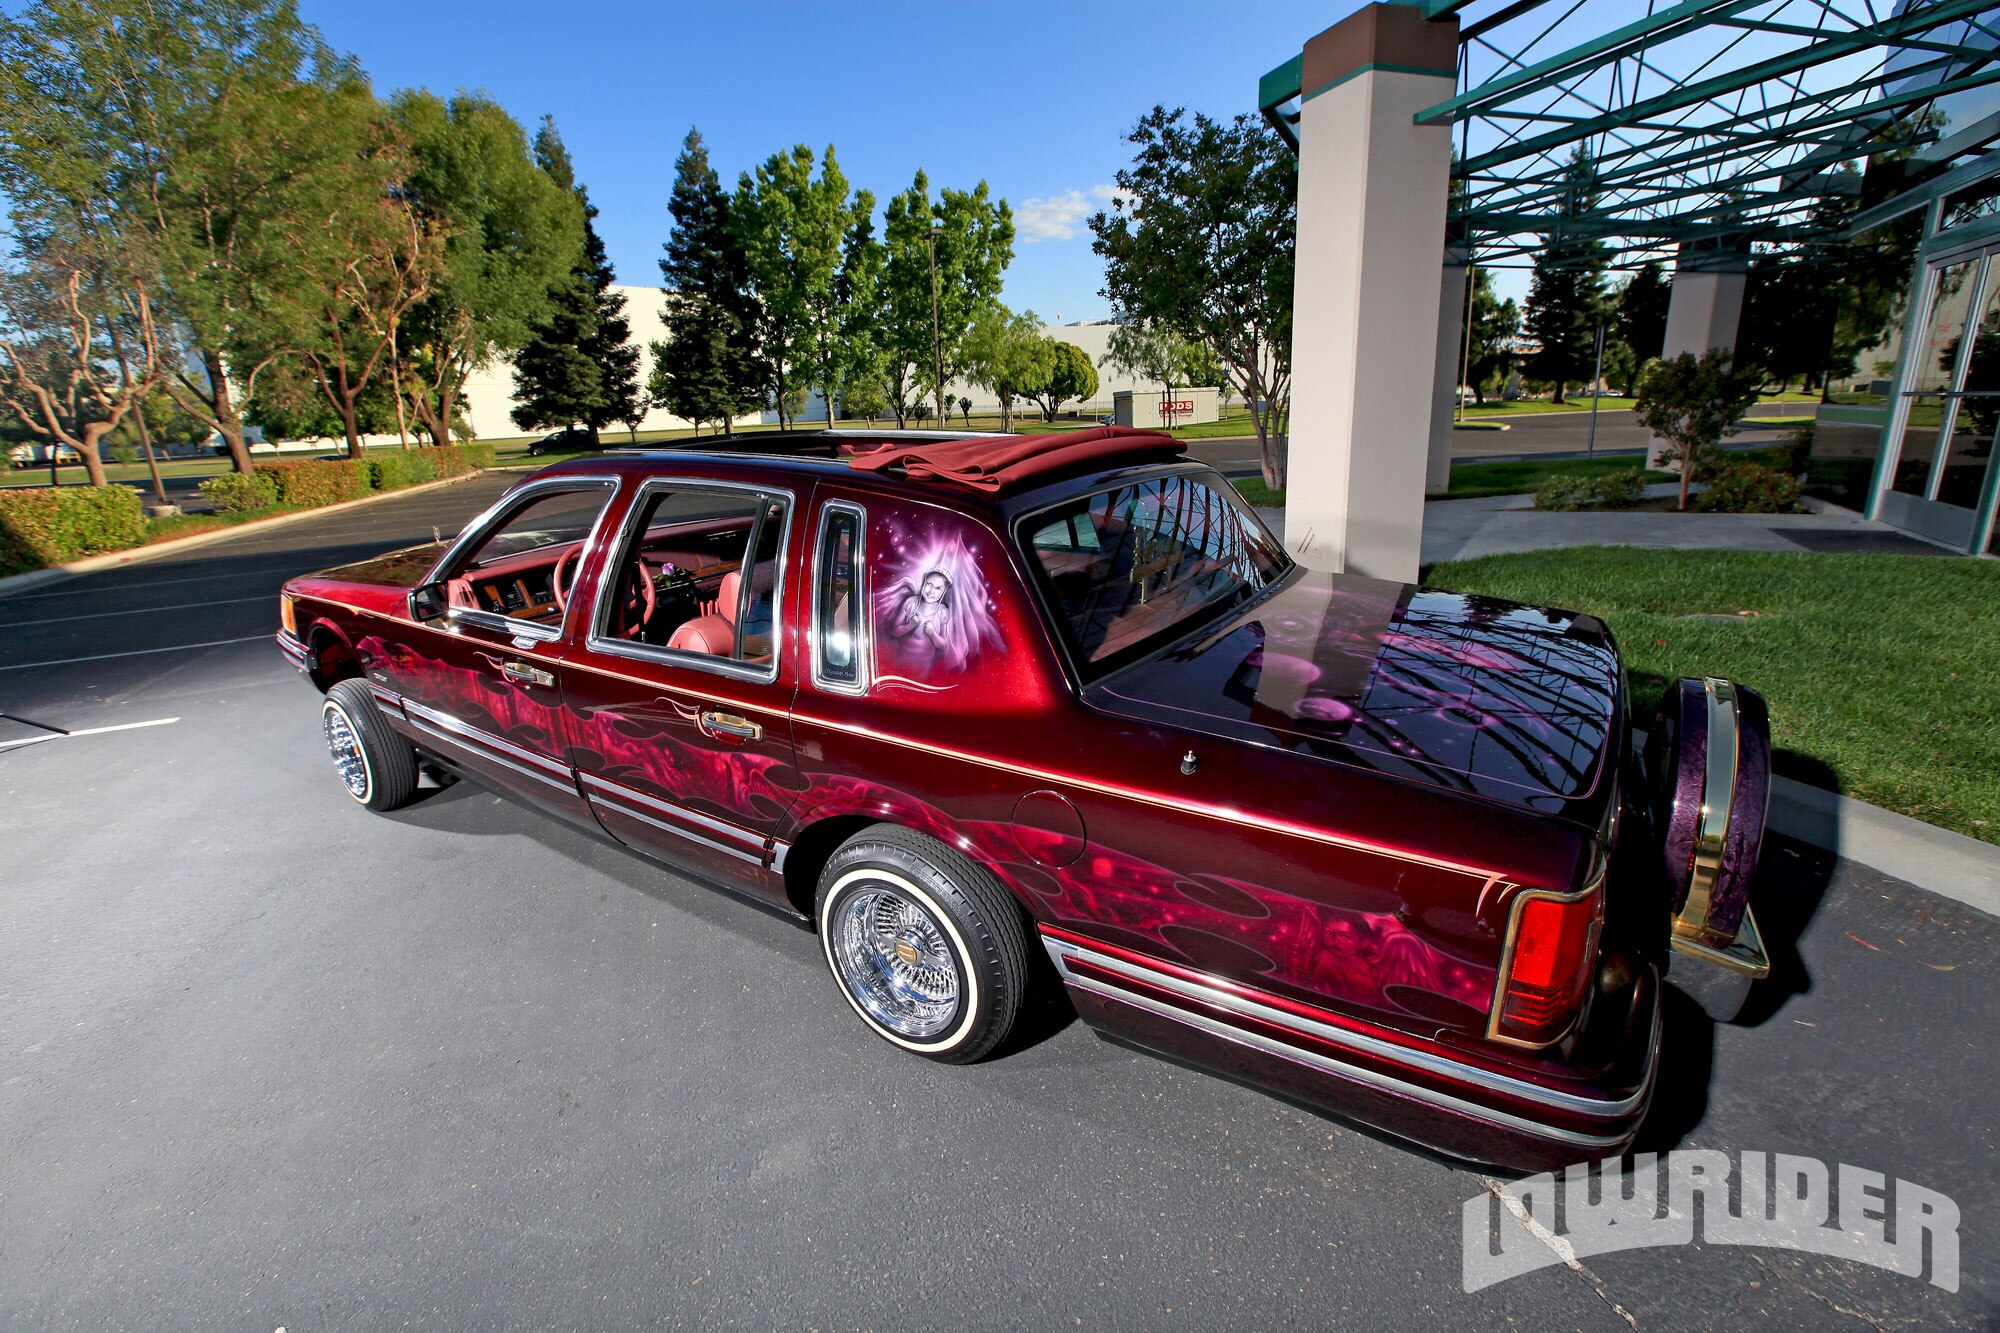 lrmp-1112-01-o-1994-lincoln-town-car-side2